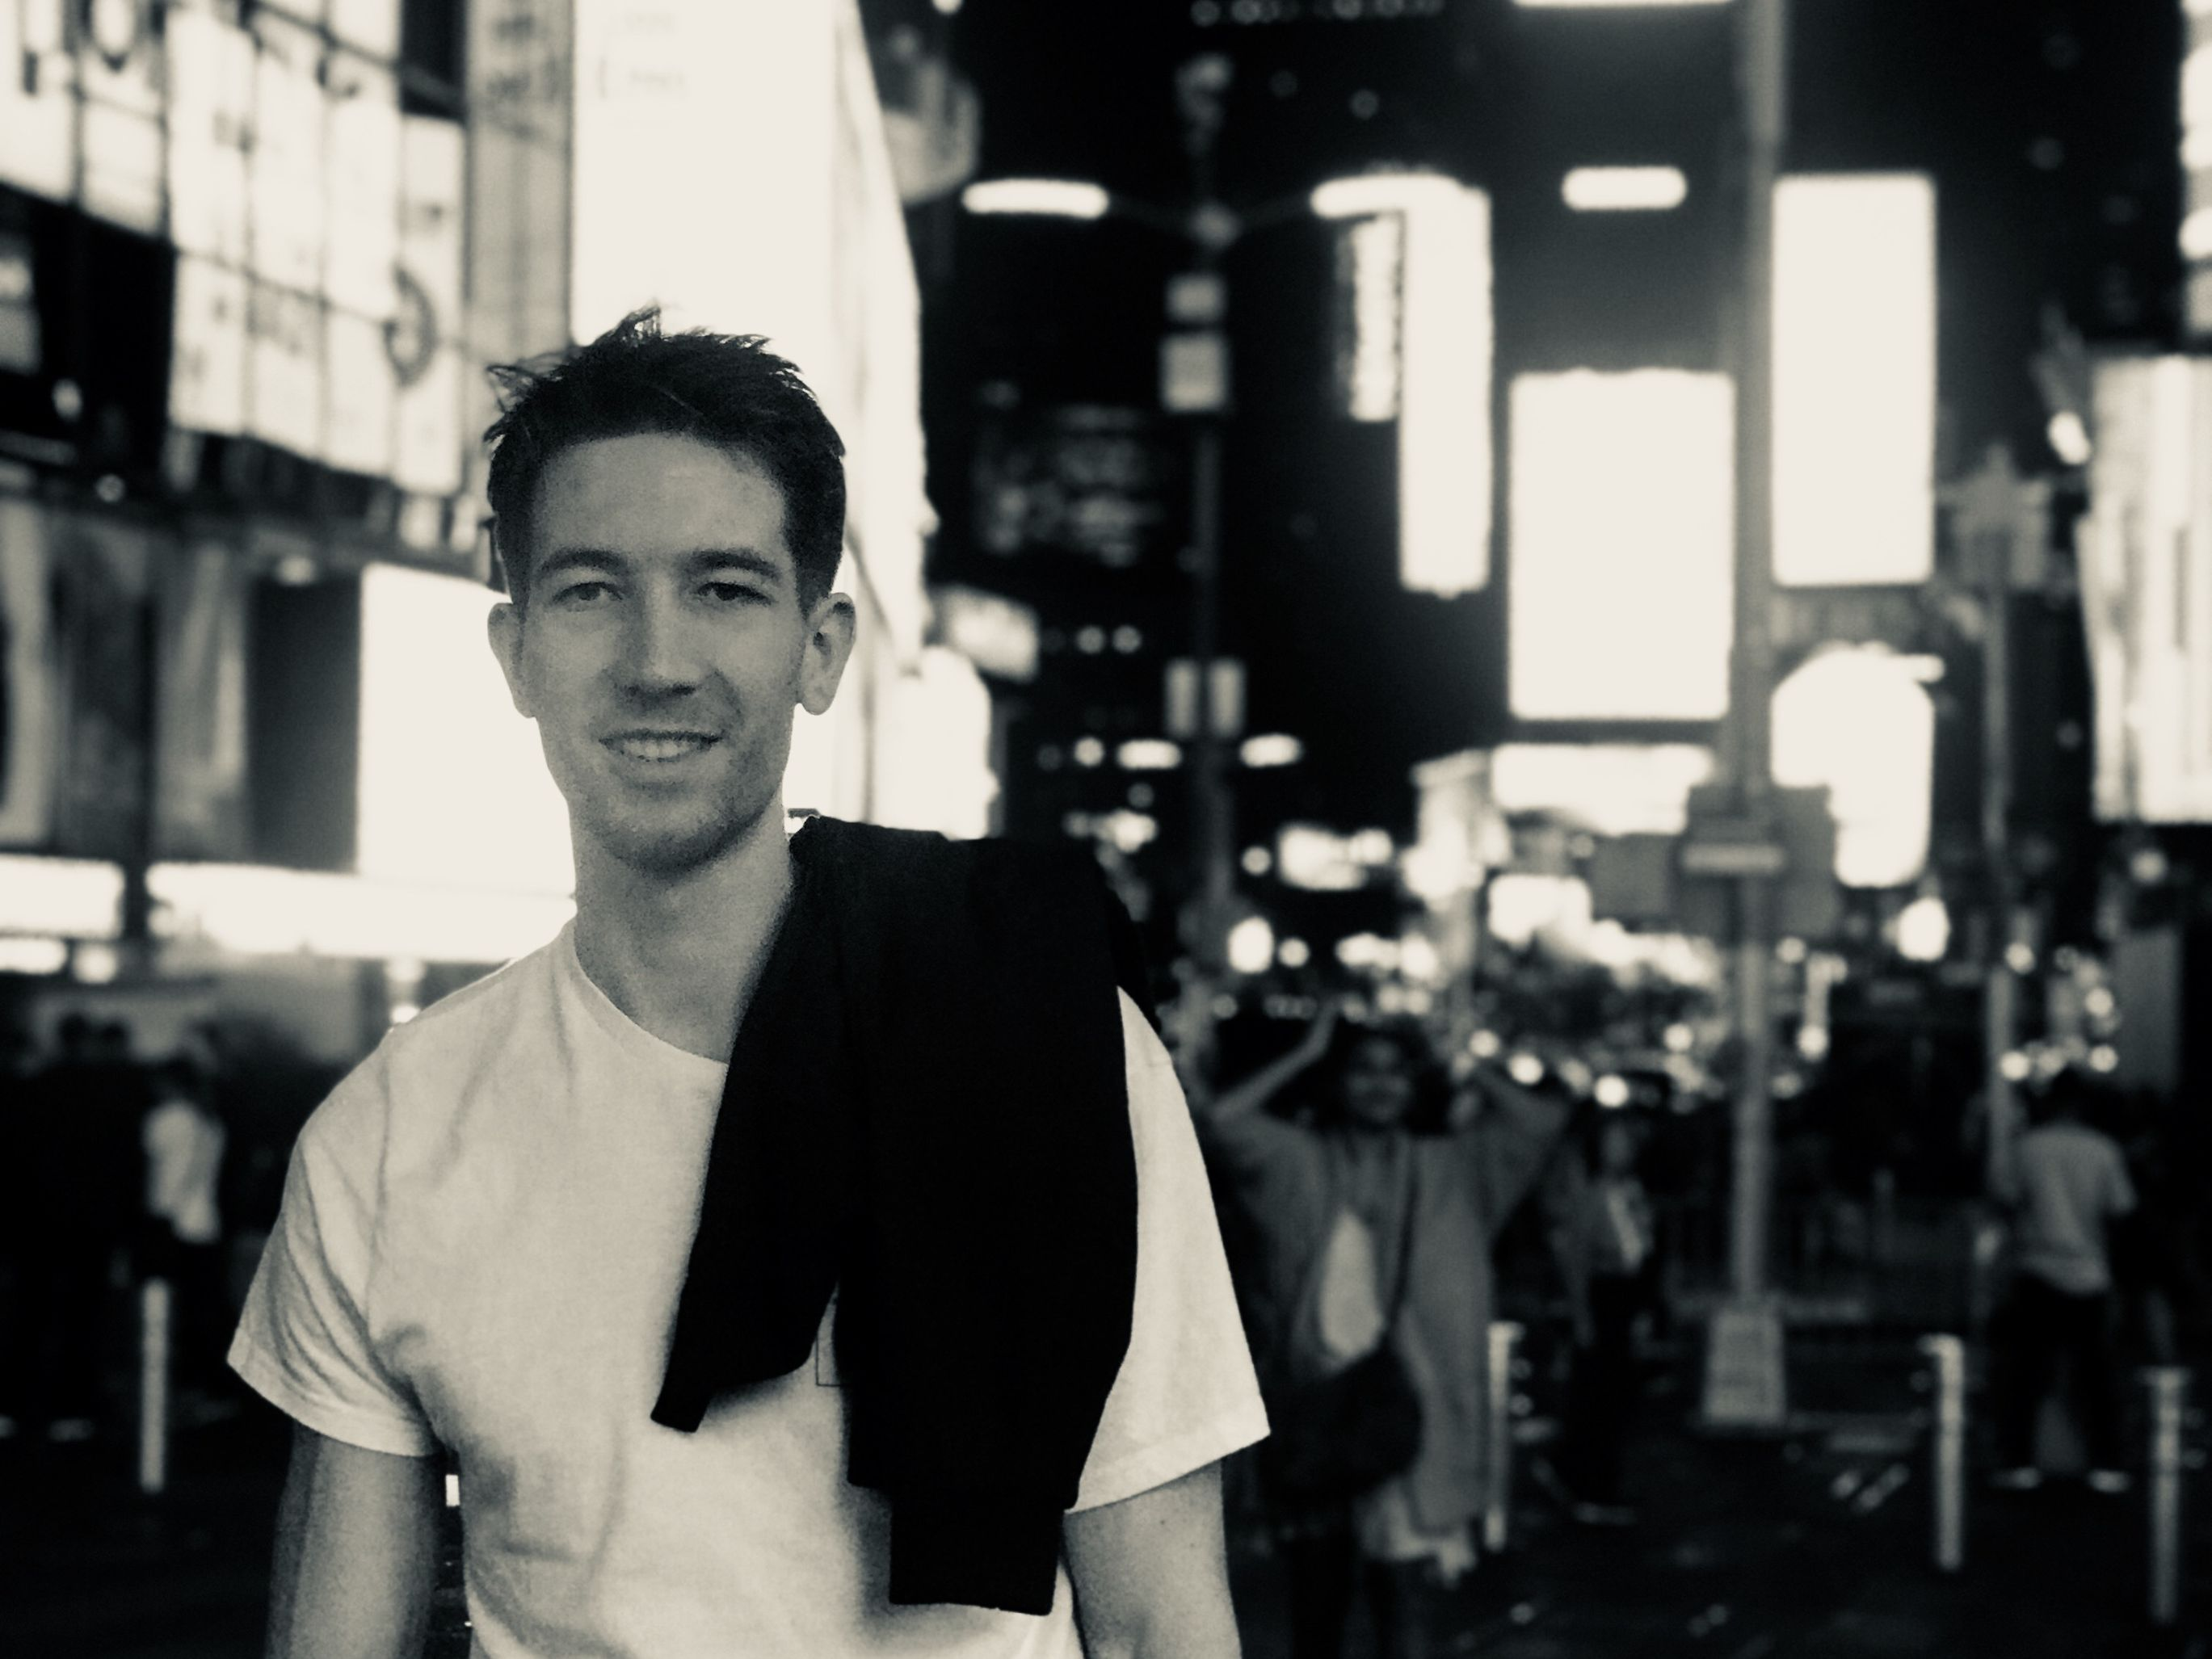 Black and white night time image of a man in a white tee-shirt